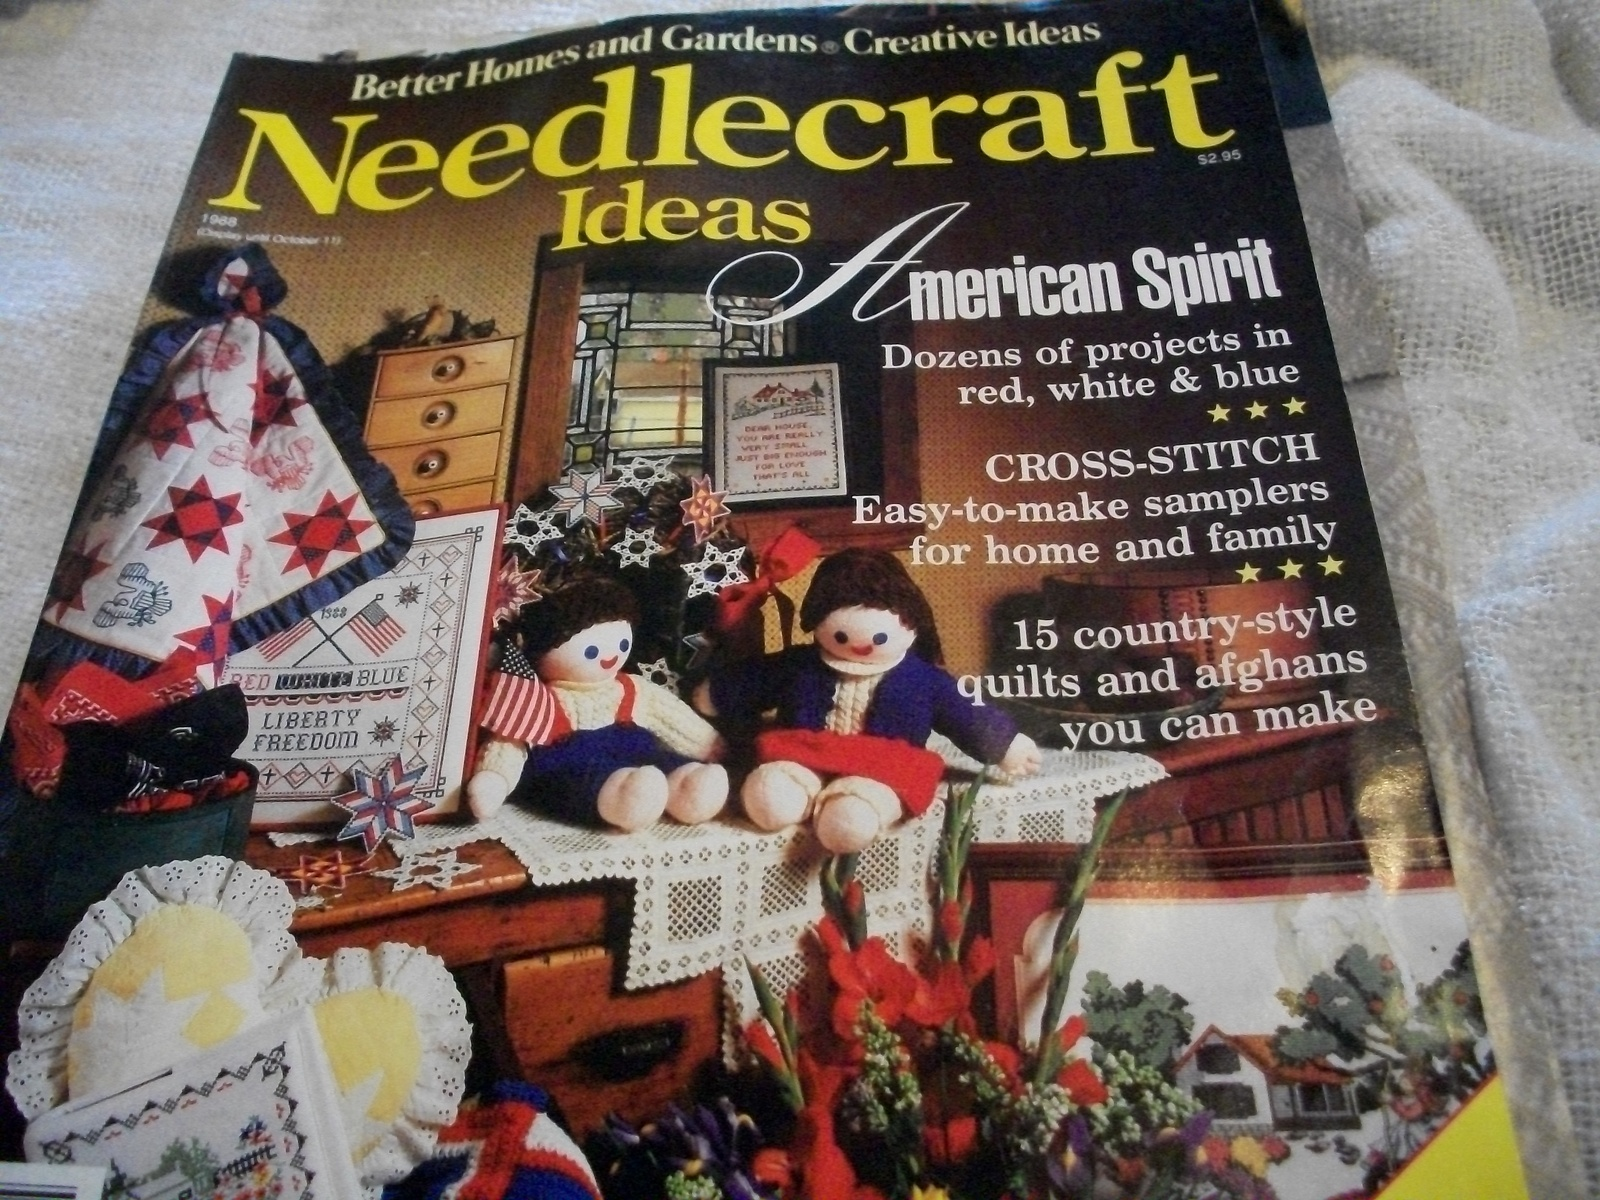 Better Homes and Gardens Needlecraft Ideas 1988 Magazine - $5.00